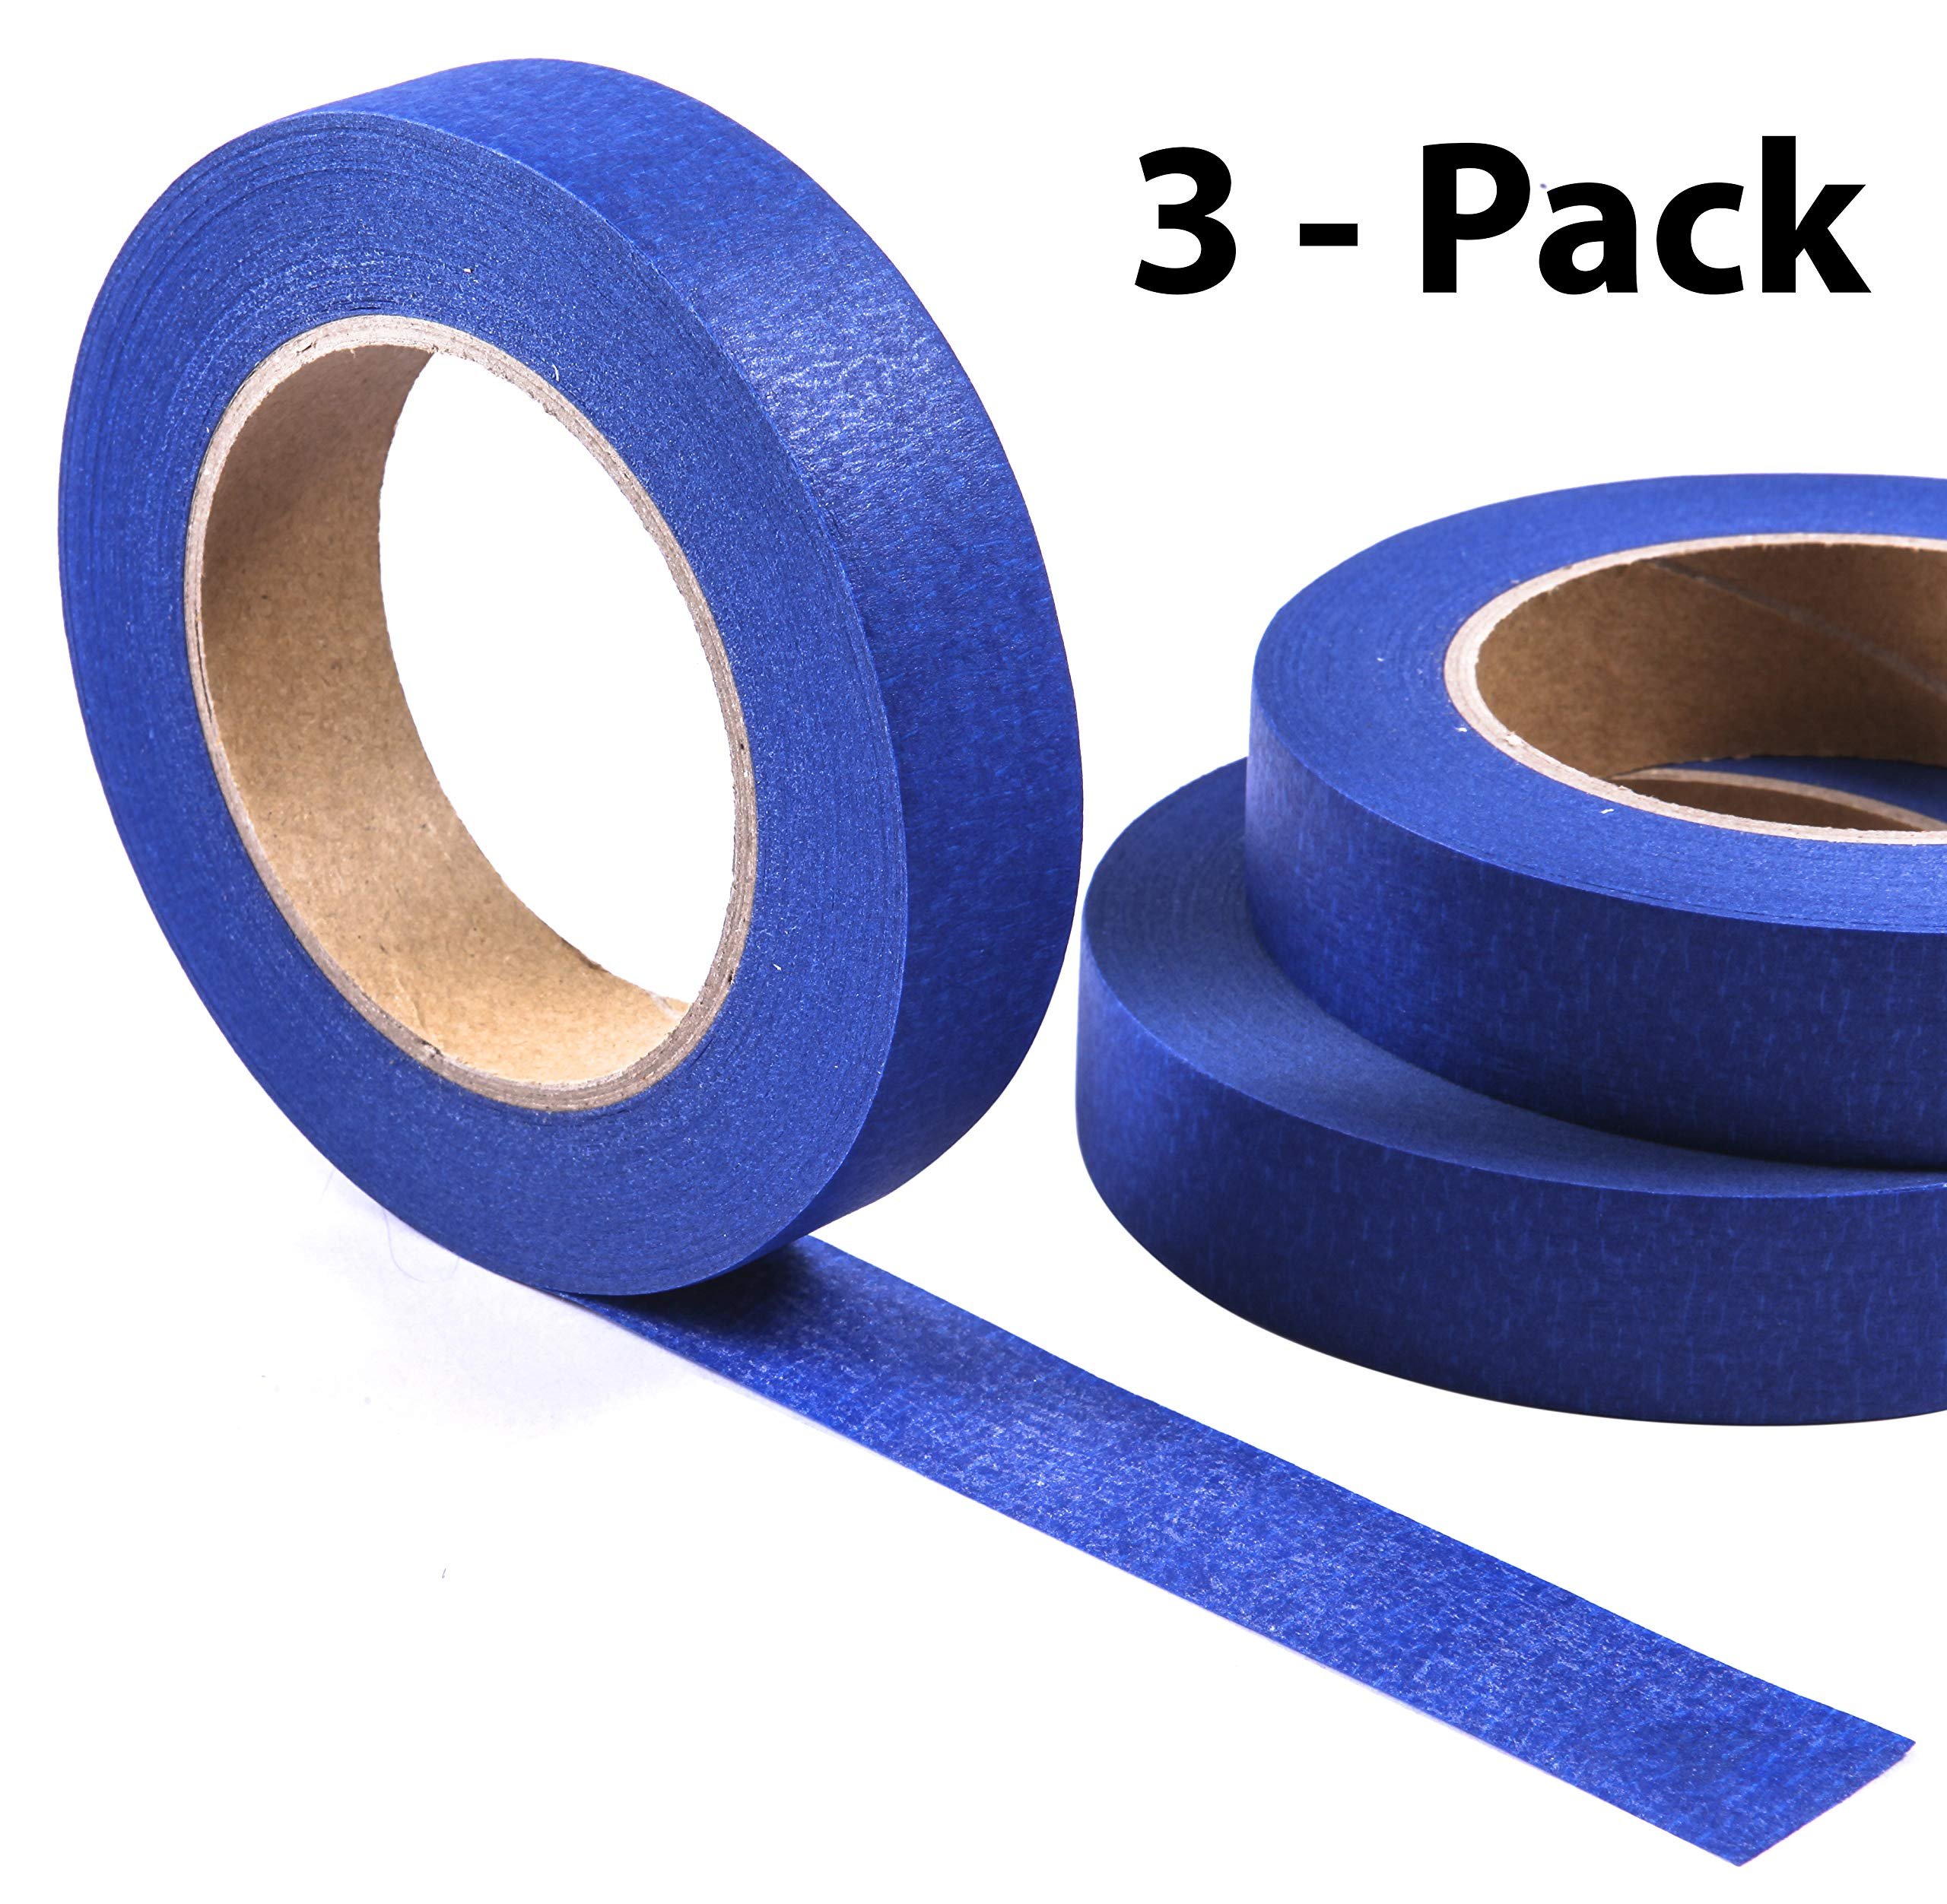 Blue Painter's Tape 3-Pack - 1 Inch by 55 Yards per Roll - Easy to Remove, Easy to Tear - No Residue - Masking Tape by Protech